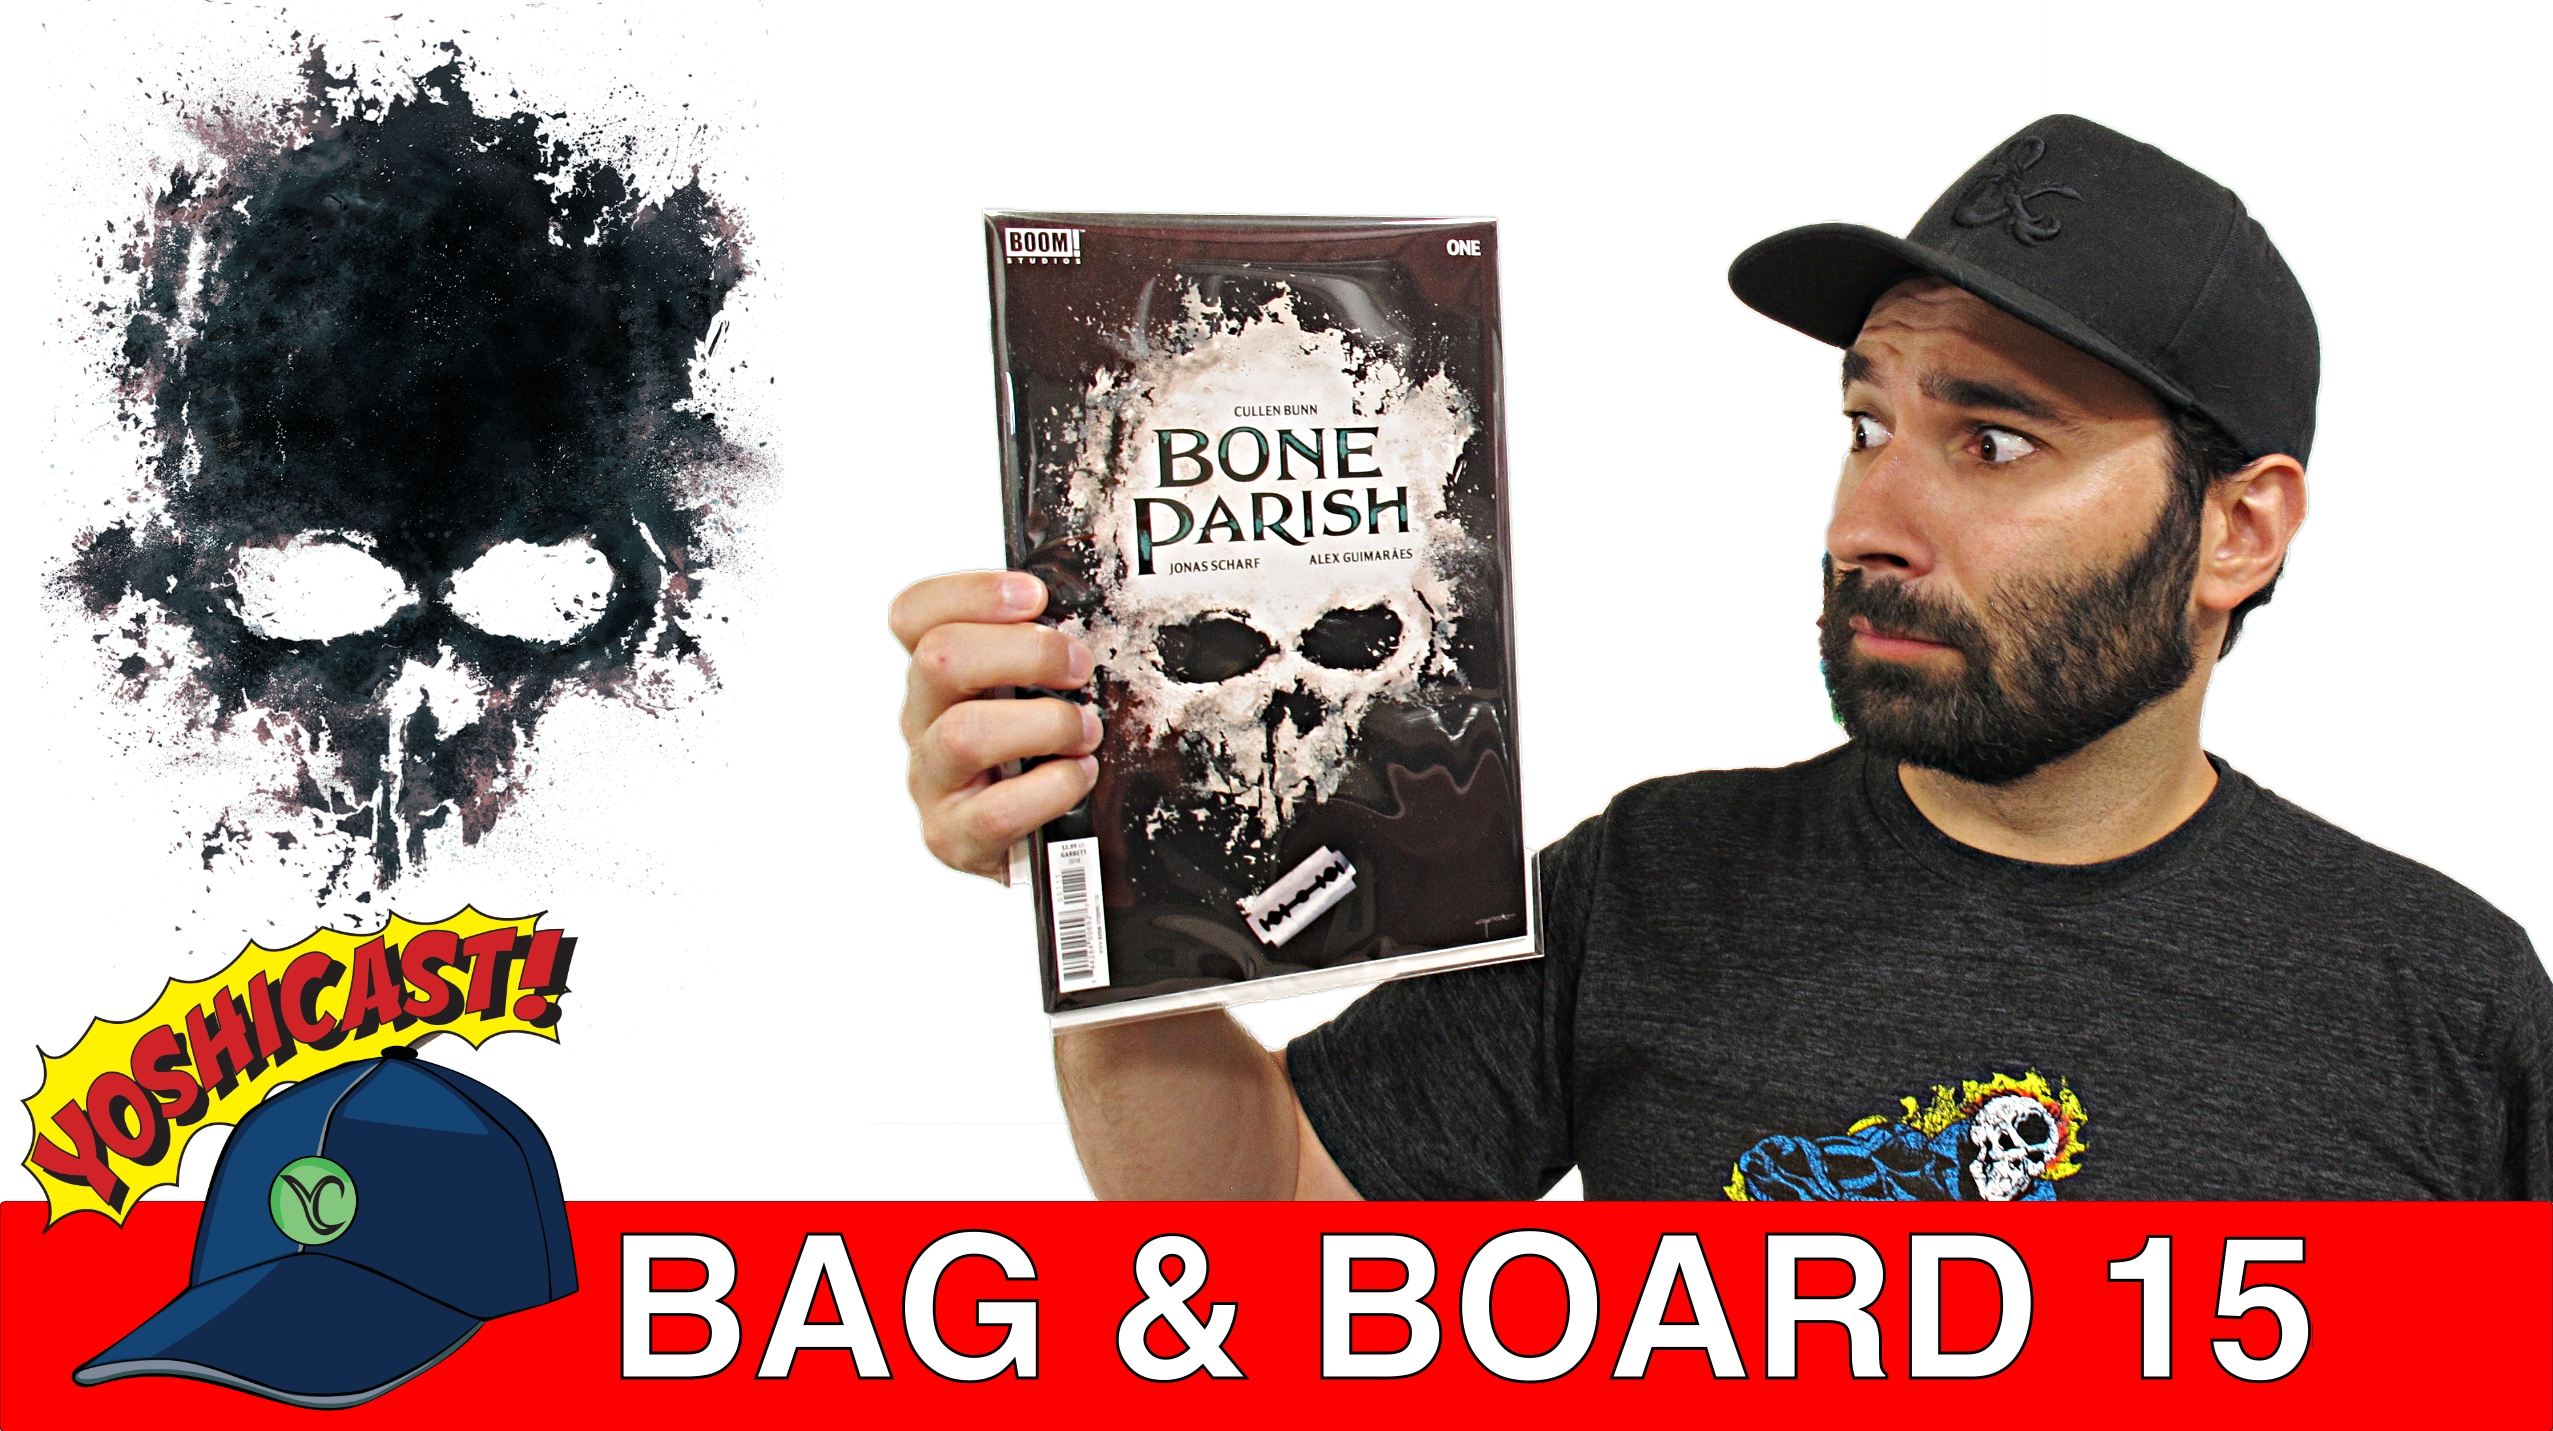 Bag & Board 15 | Bone Parish, Venom, Fantastic Four, X-Men, Spider-Man